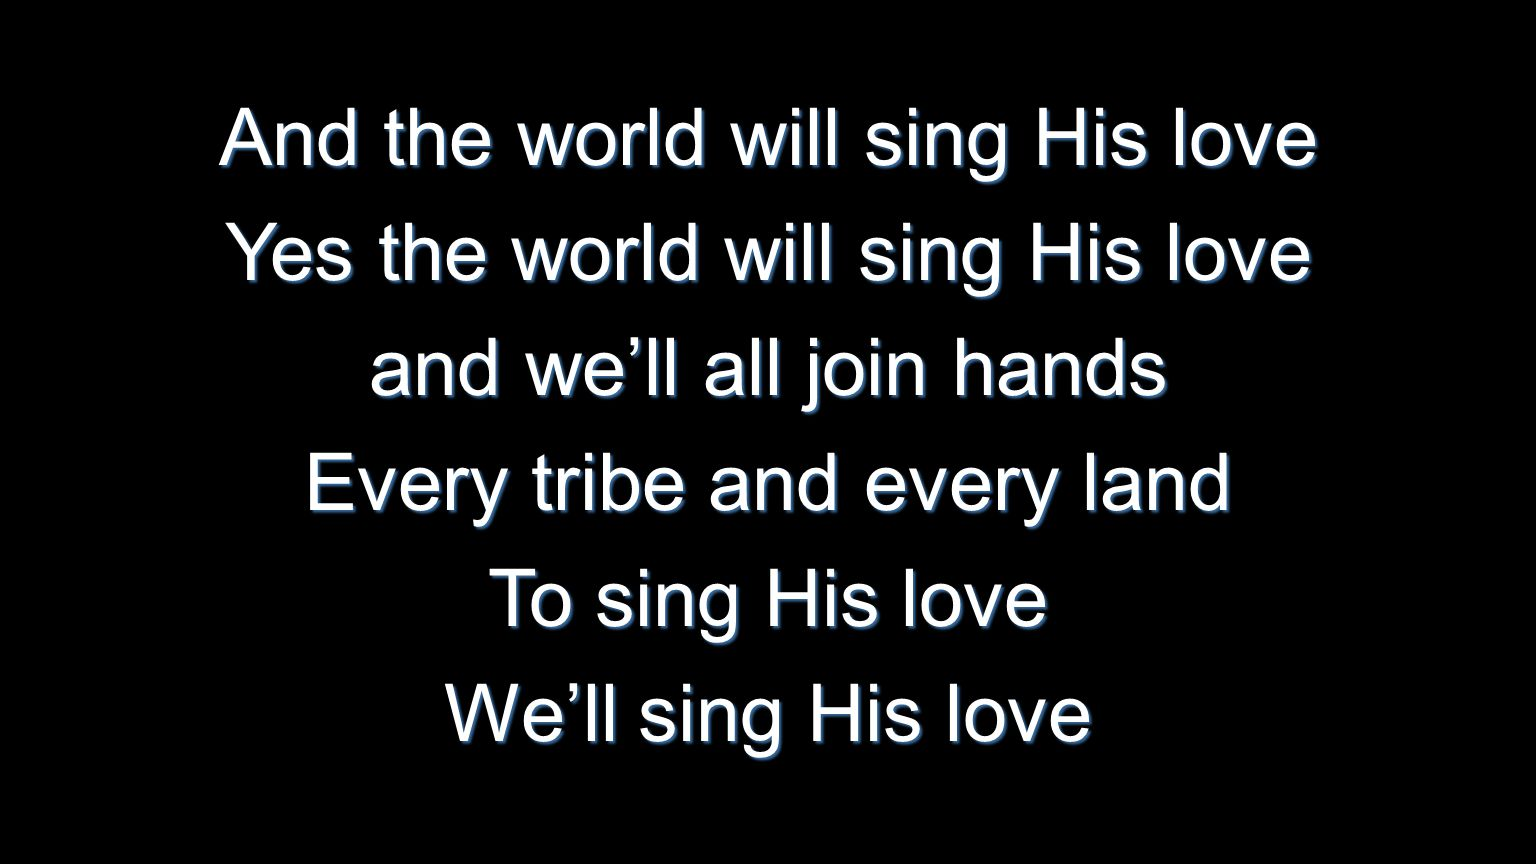 And the world will sing His love Yes the world will sing His love and we'll all join hands Every tribe and every land To sing His love We'll sing His